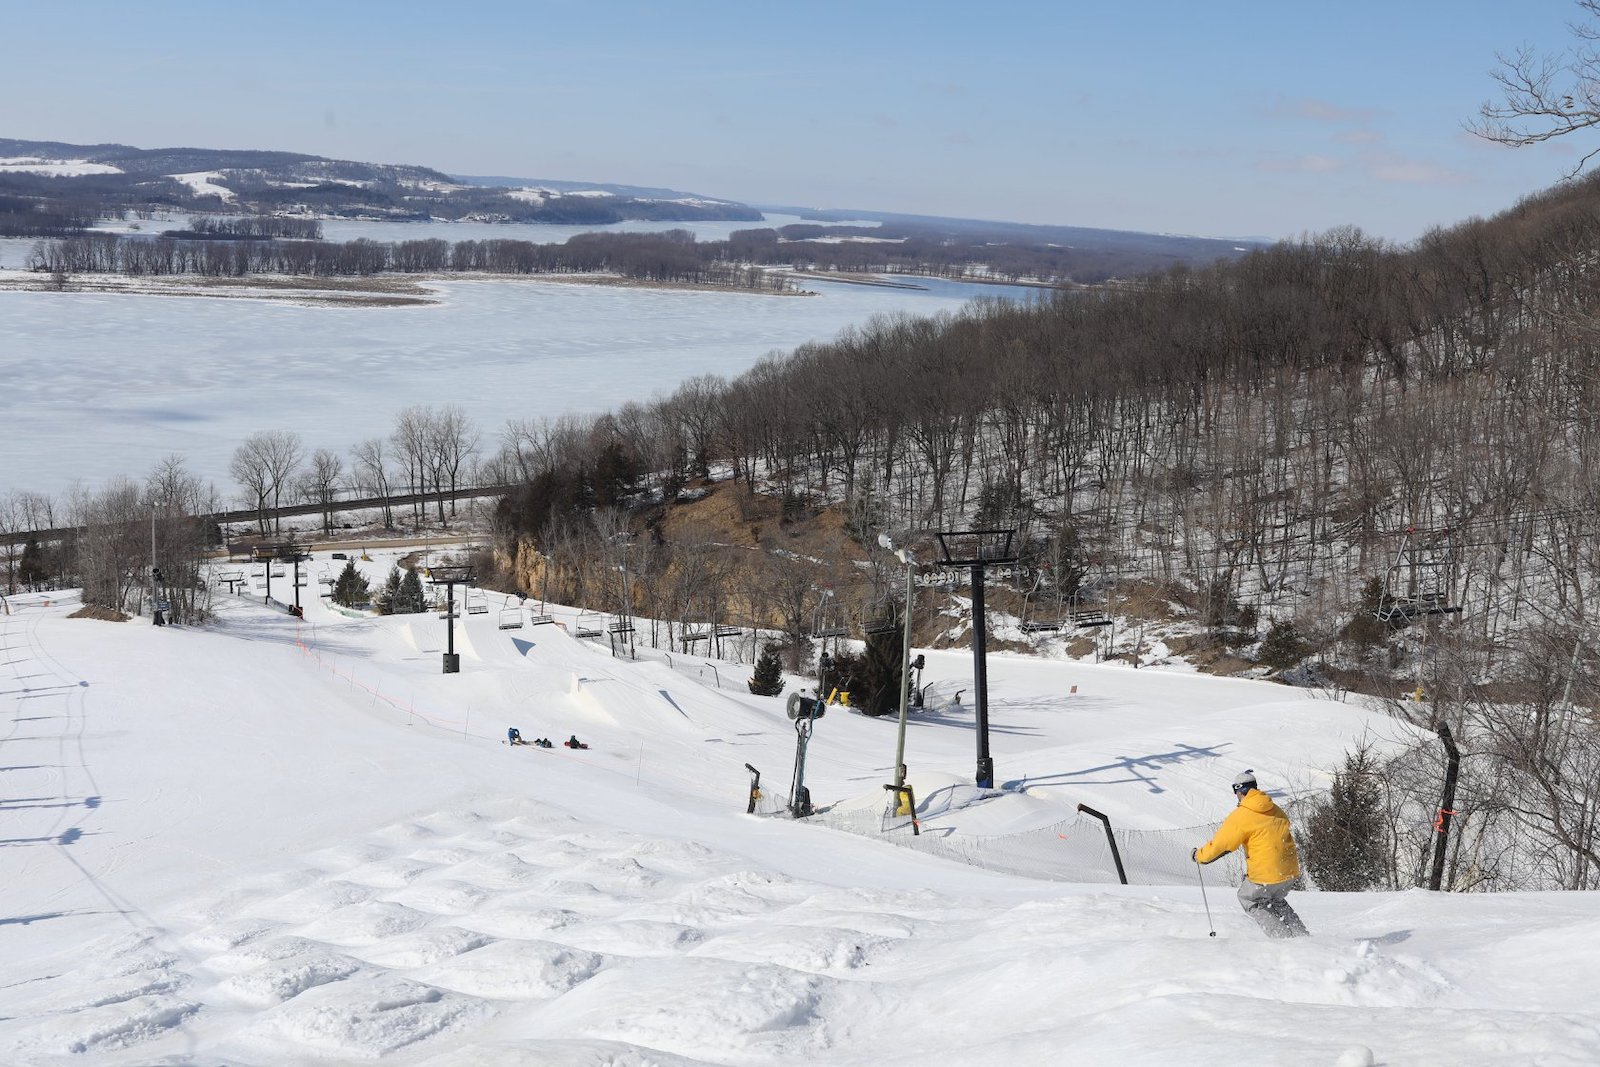 Image of skier in yellow coat going down the slopes at Chestnut Mountain Resort in Illinois